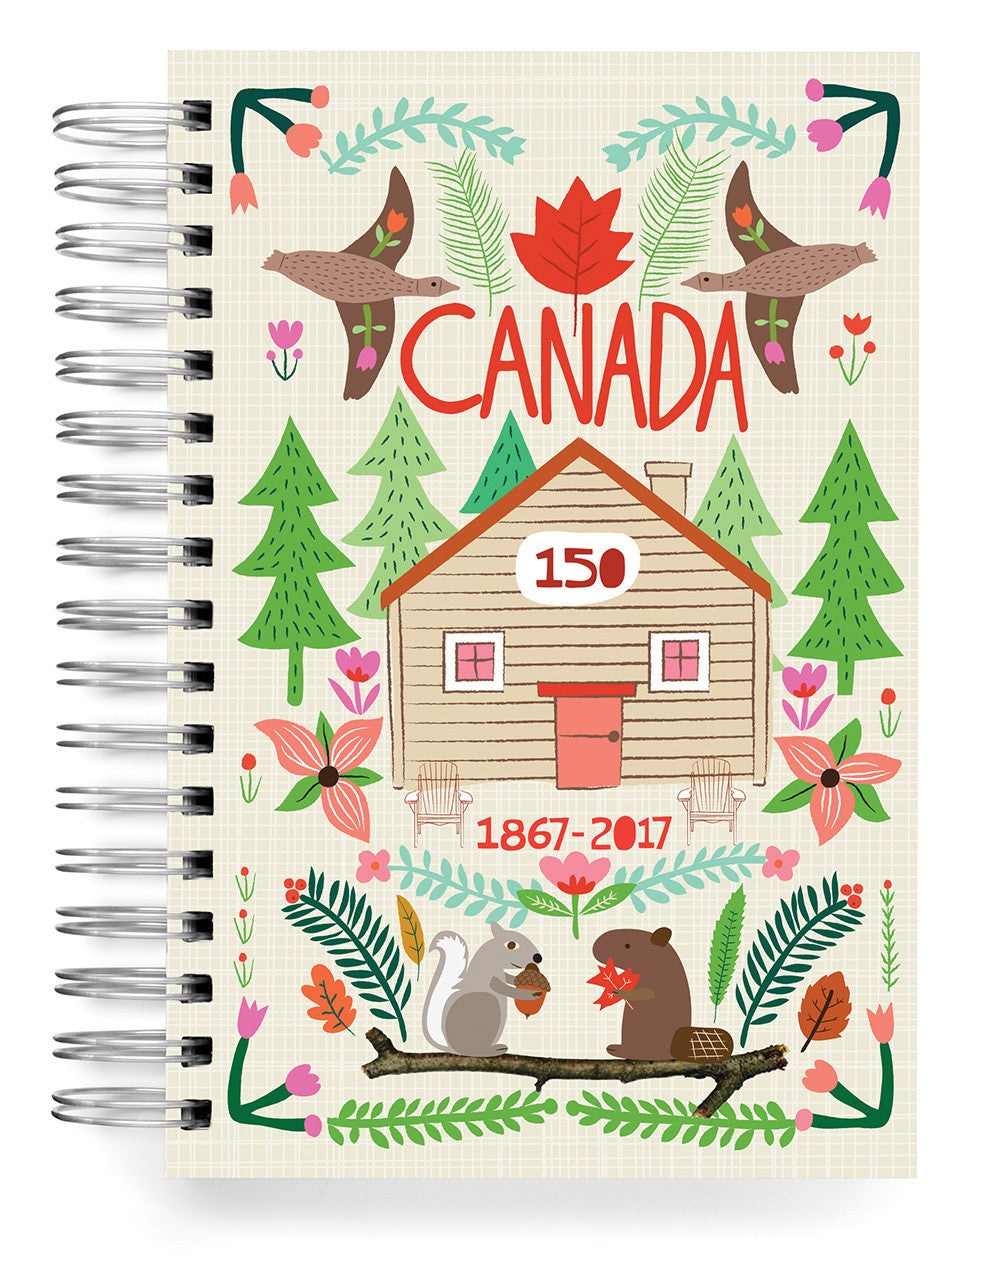 Cabin 150 Jumbo Journal